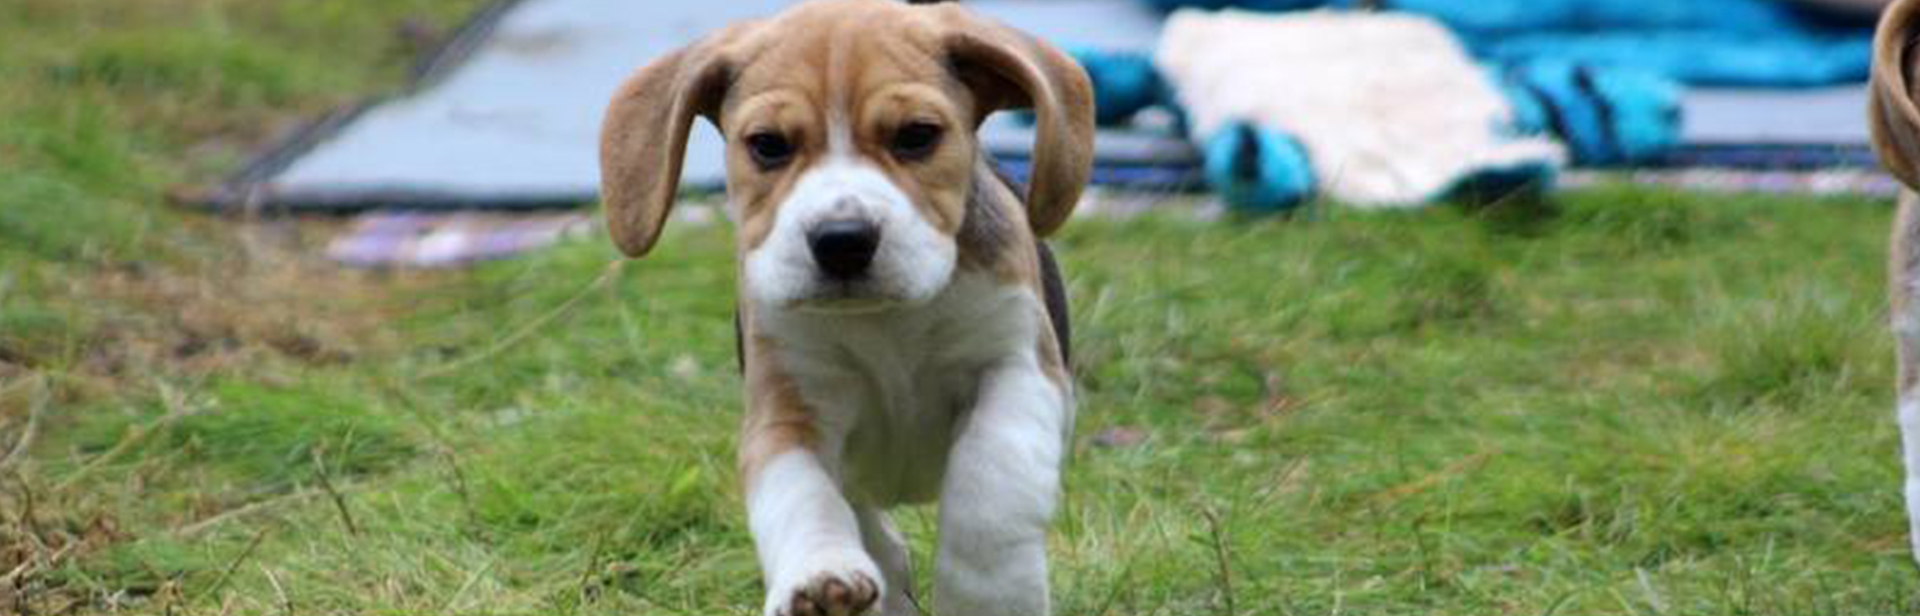 Beagle puppy running